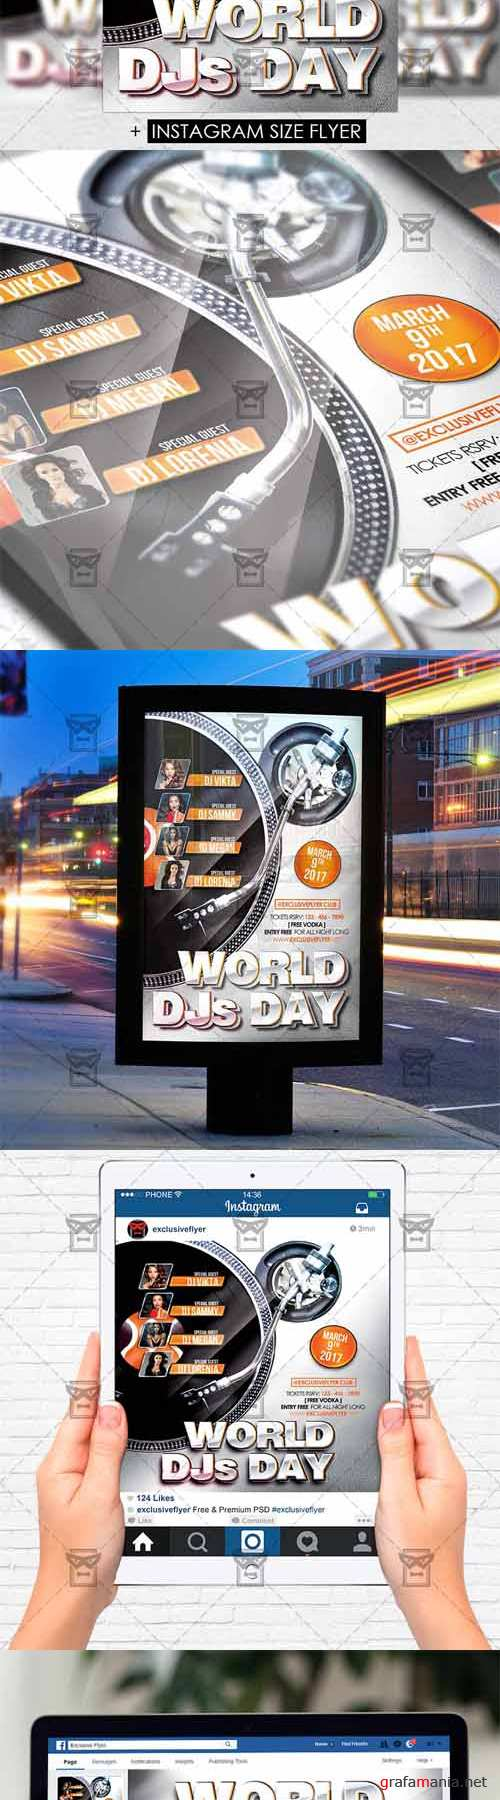 Flyer Template - World DJS Day Vol 2